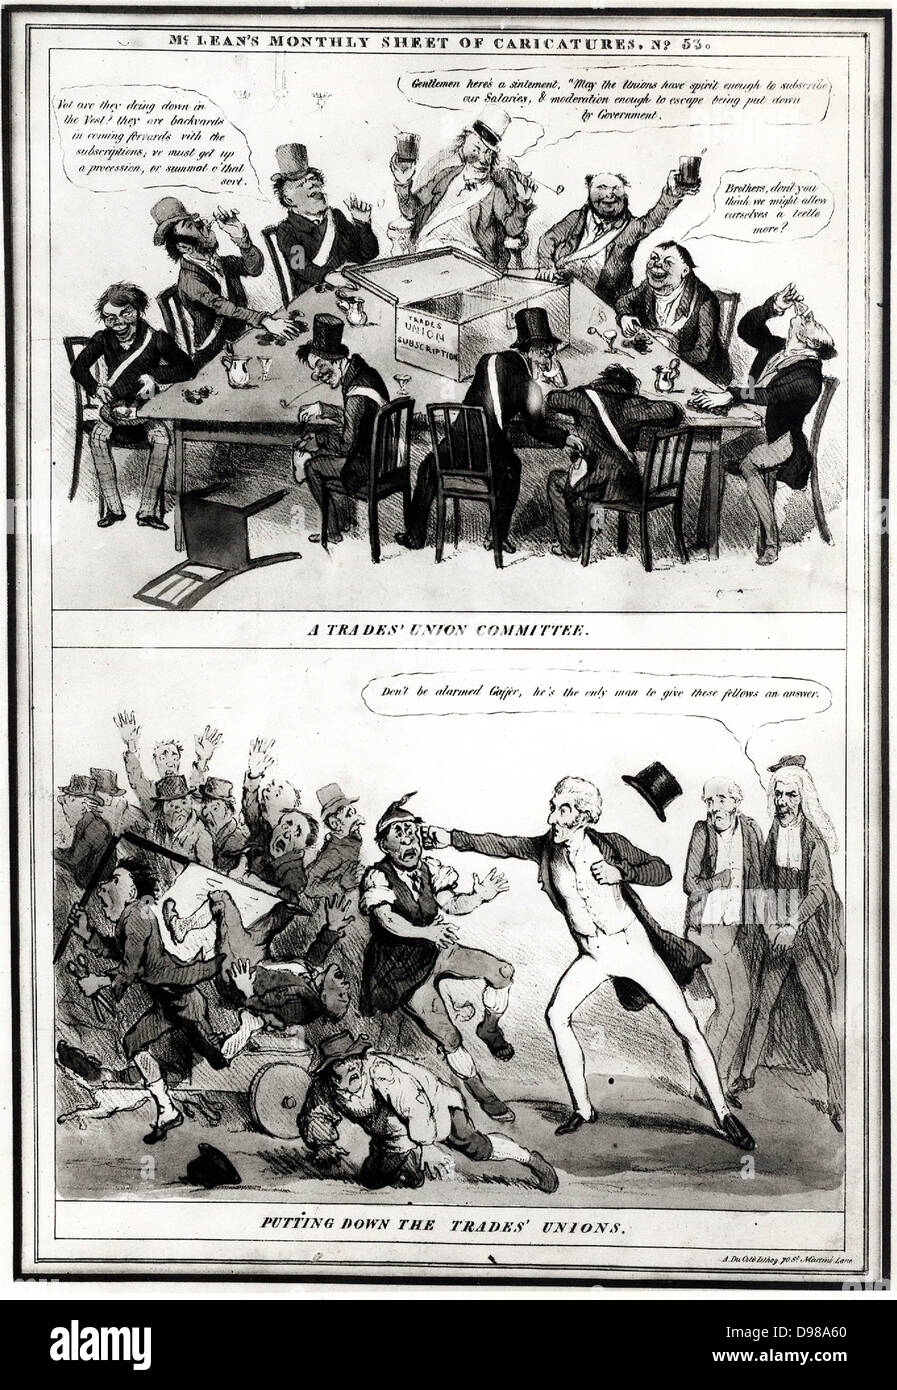 Anti-Trades Union cartoon showing a meeting of a Trades' Union Committee, top, and the Duke of Wellington putting - Stock Image